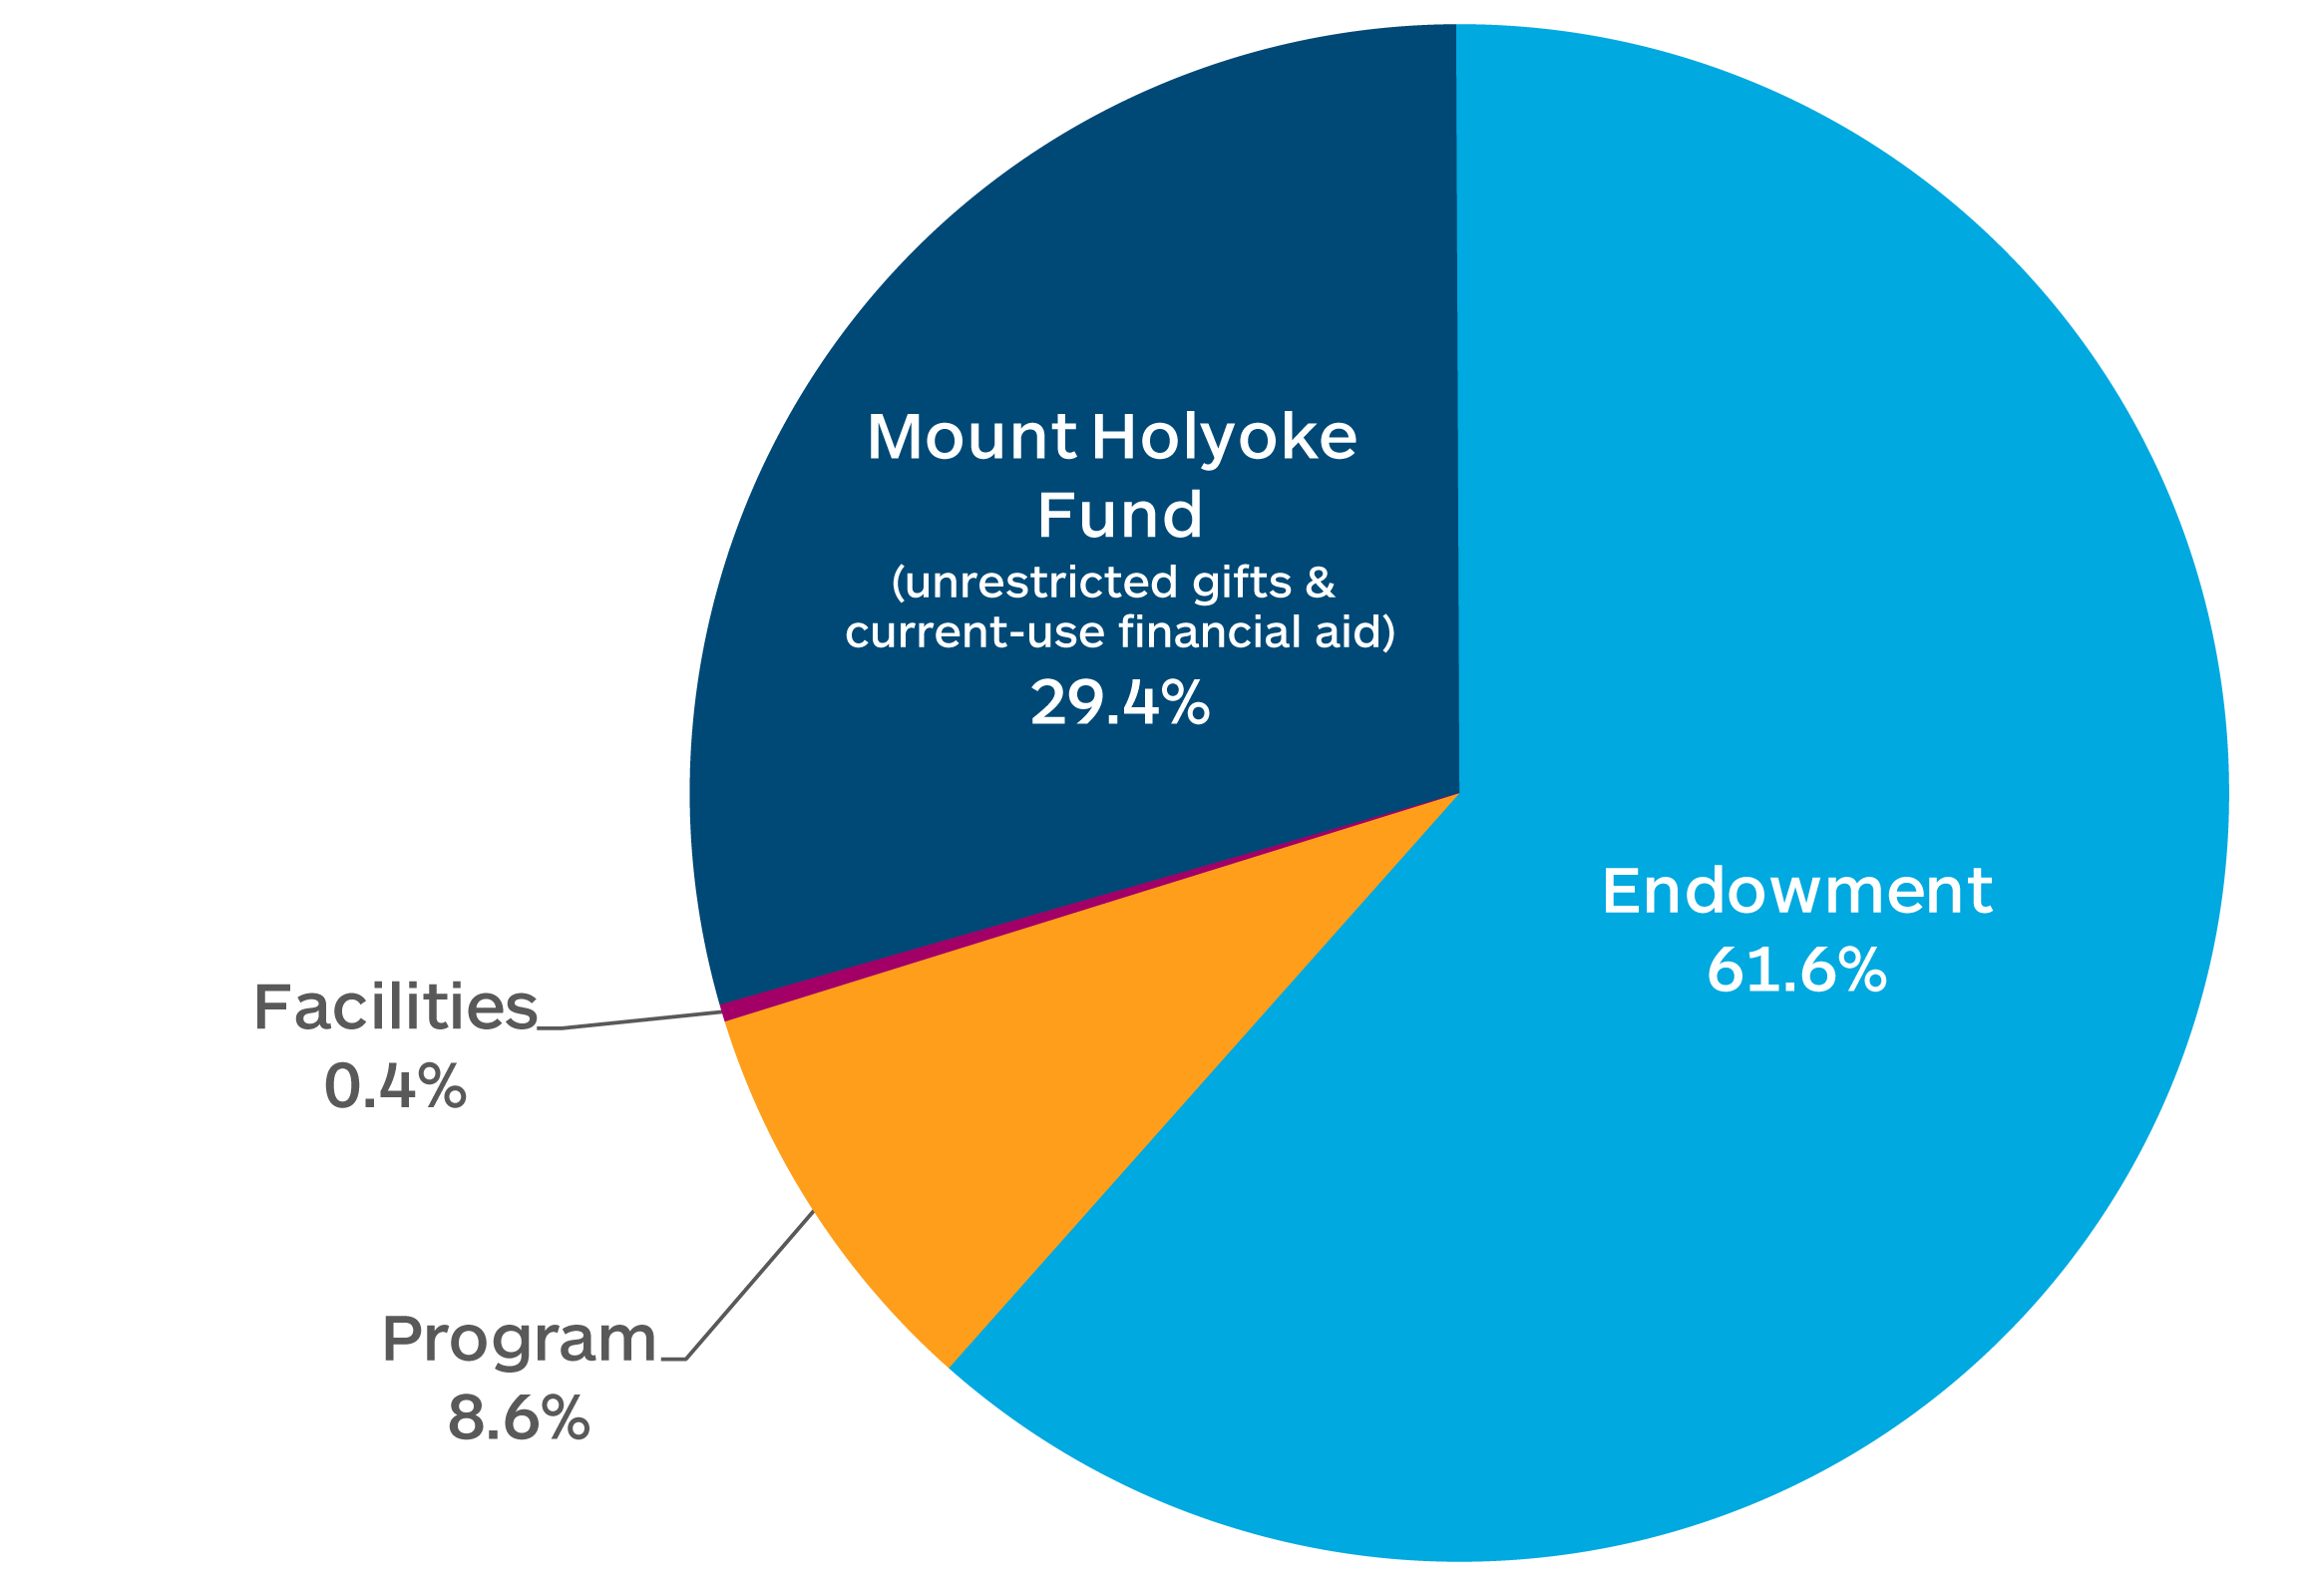 Gifts by Purpose: Endowment 61.6%, Mount Holyoke Fund 29.4%, Programs 8.6%, Facilities 0.4%